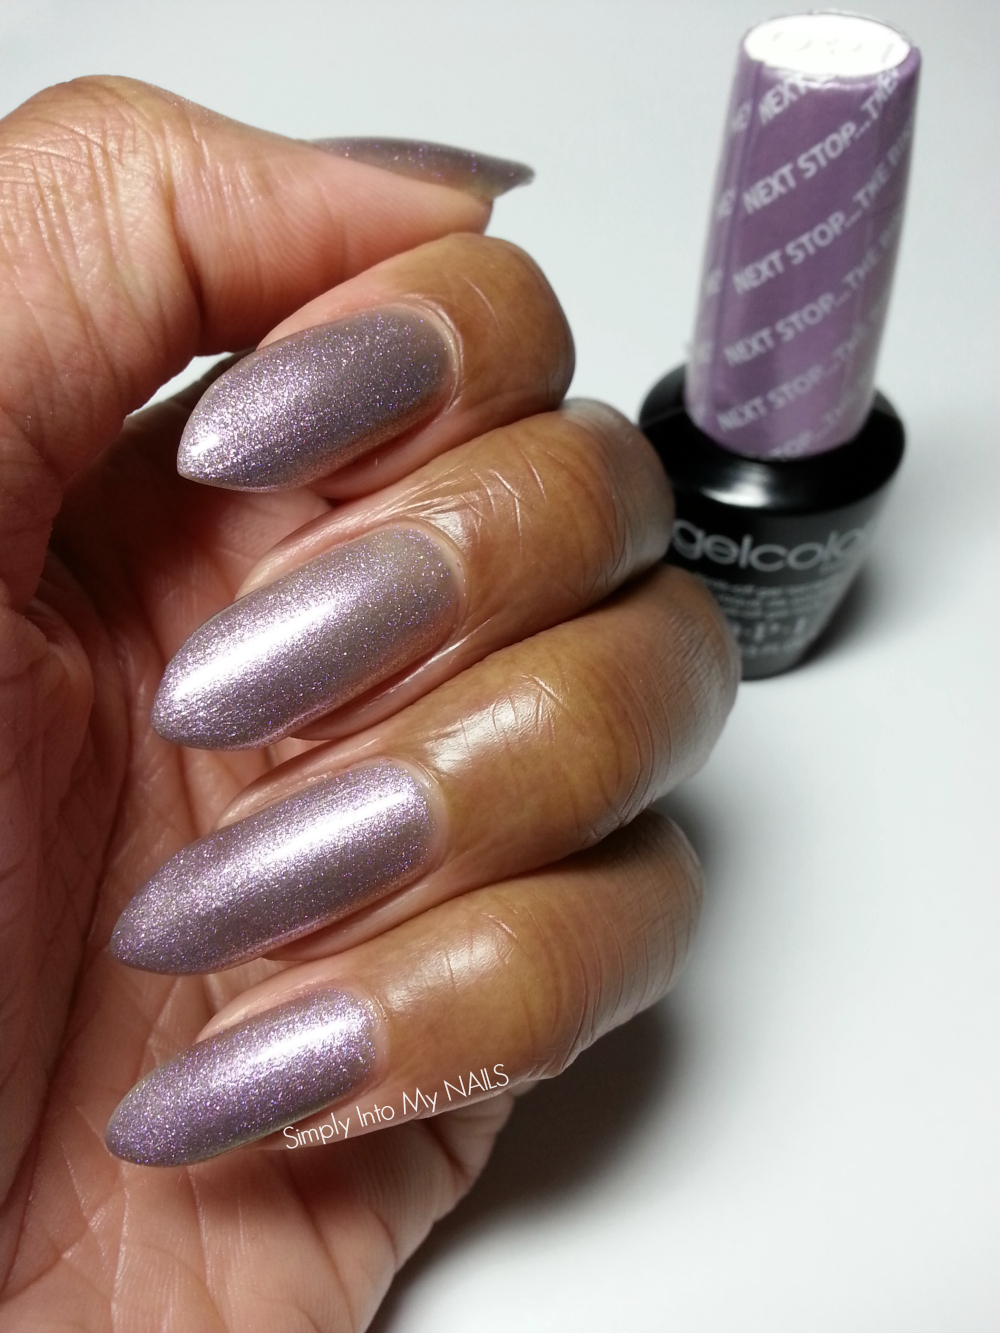 OPI Gelcolor Next Stop The Bikini Zone | Simply Into My NAILS